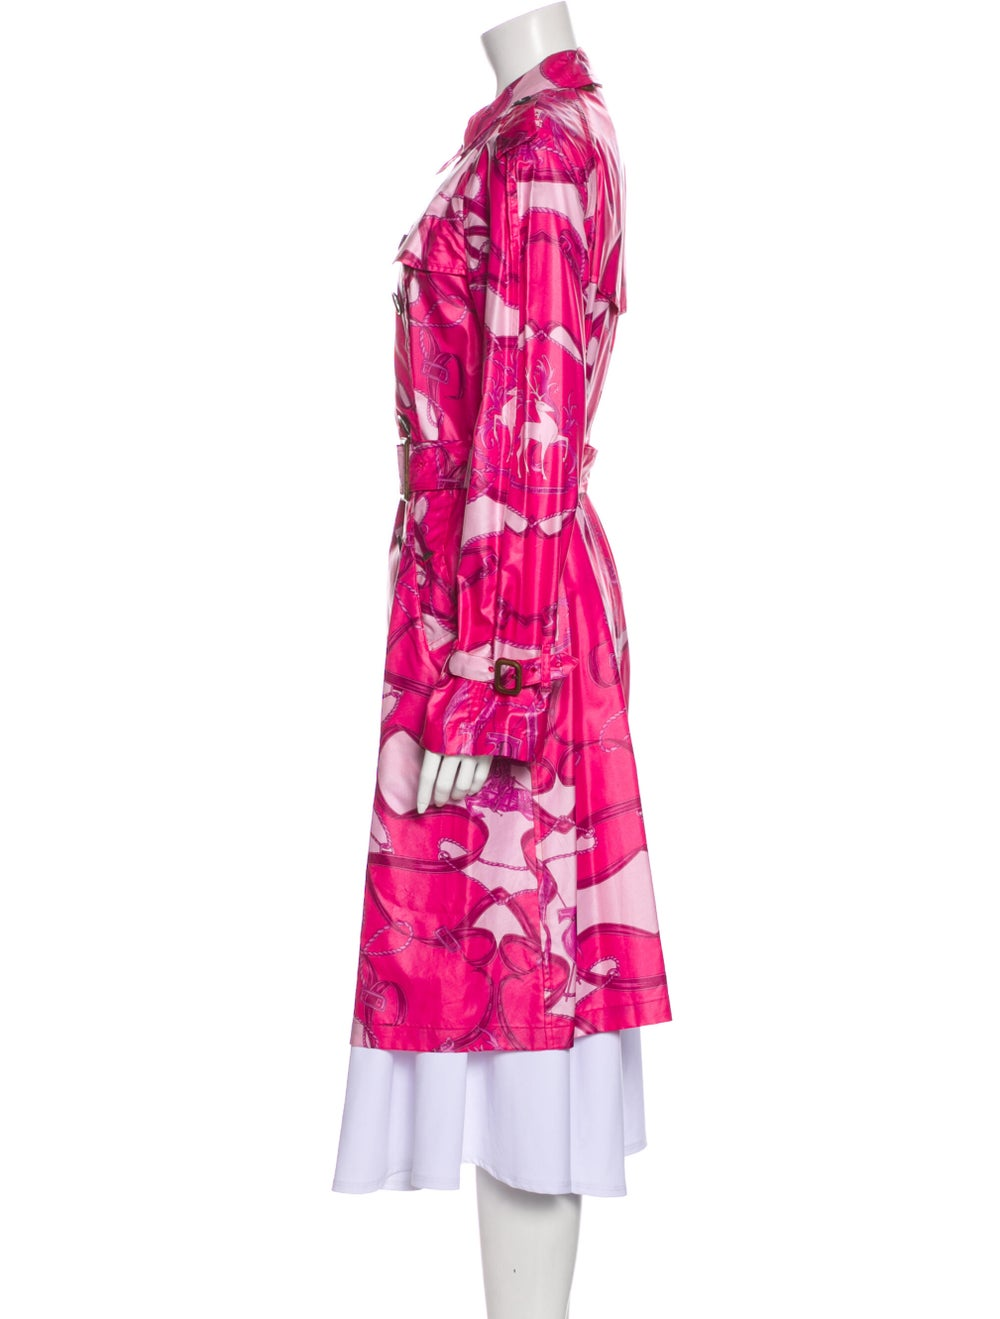 Burberry Printed Trench Coat Pink - image 2